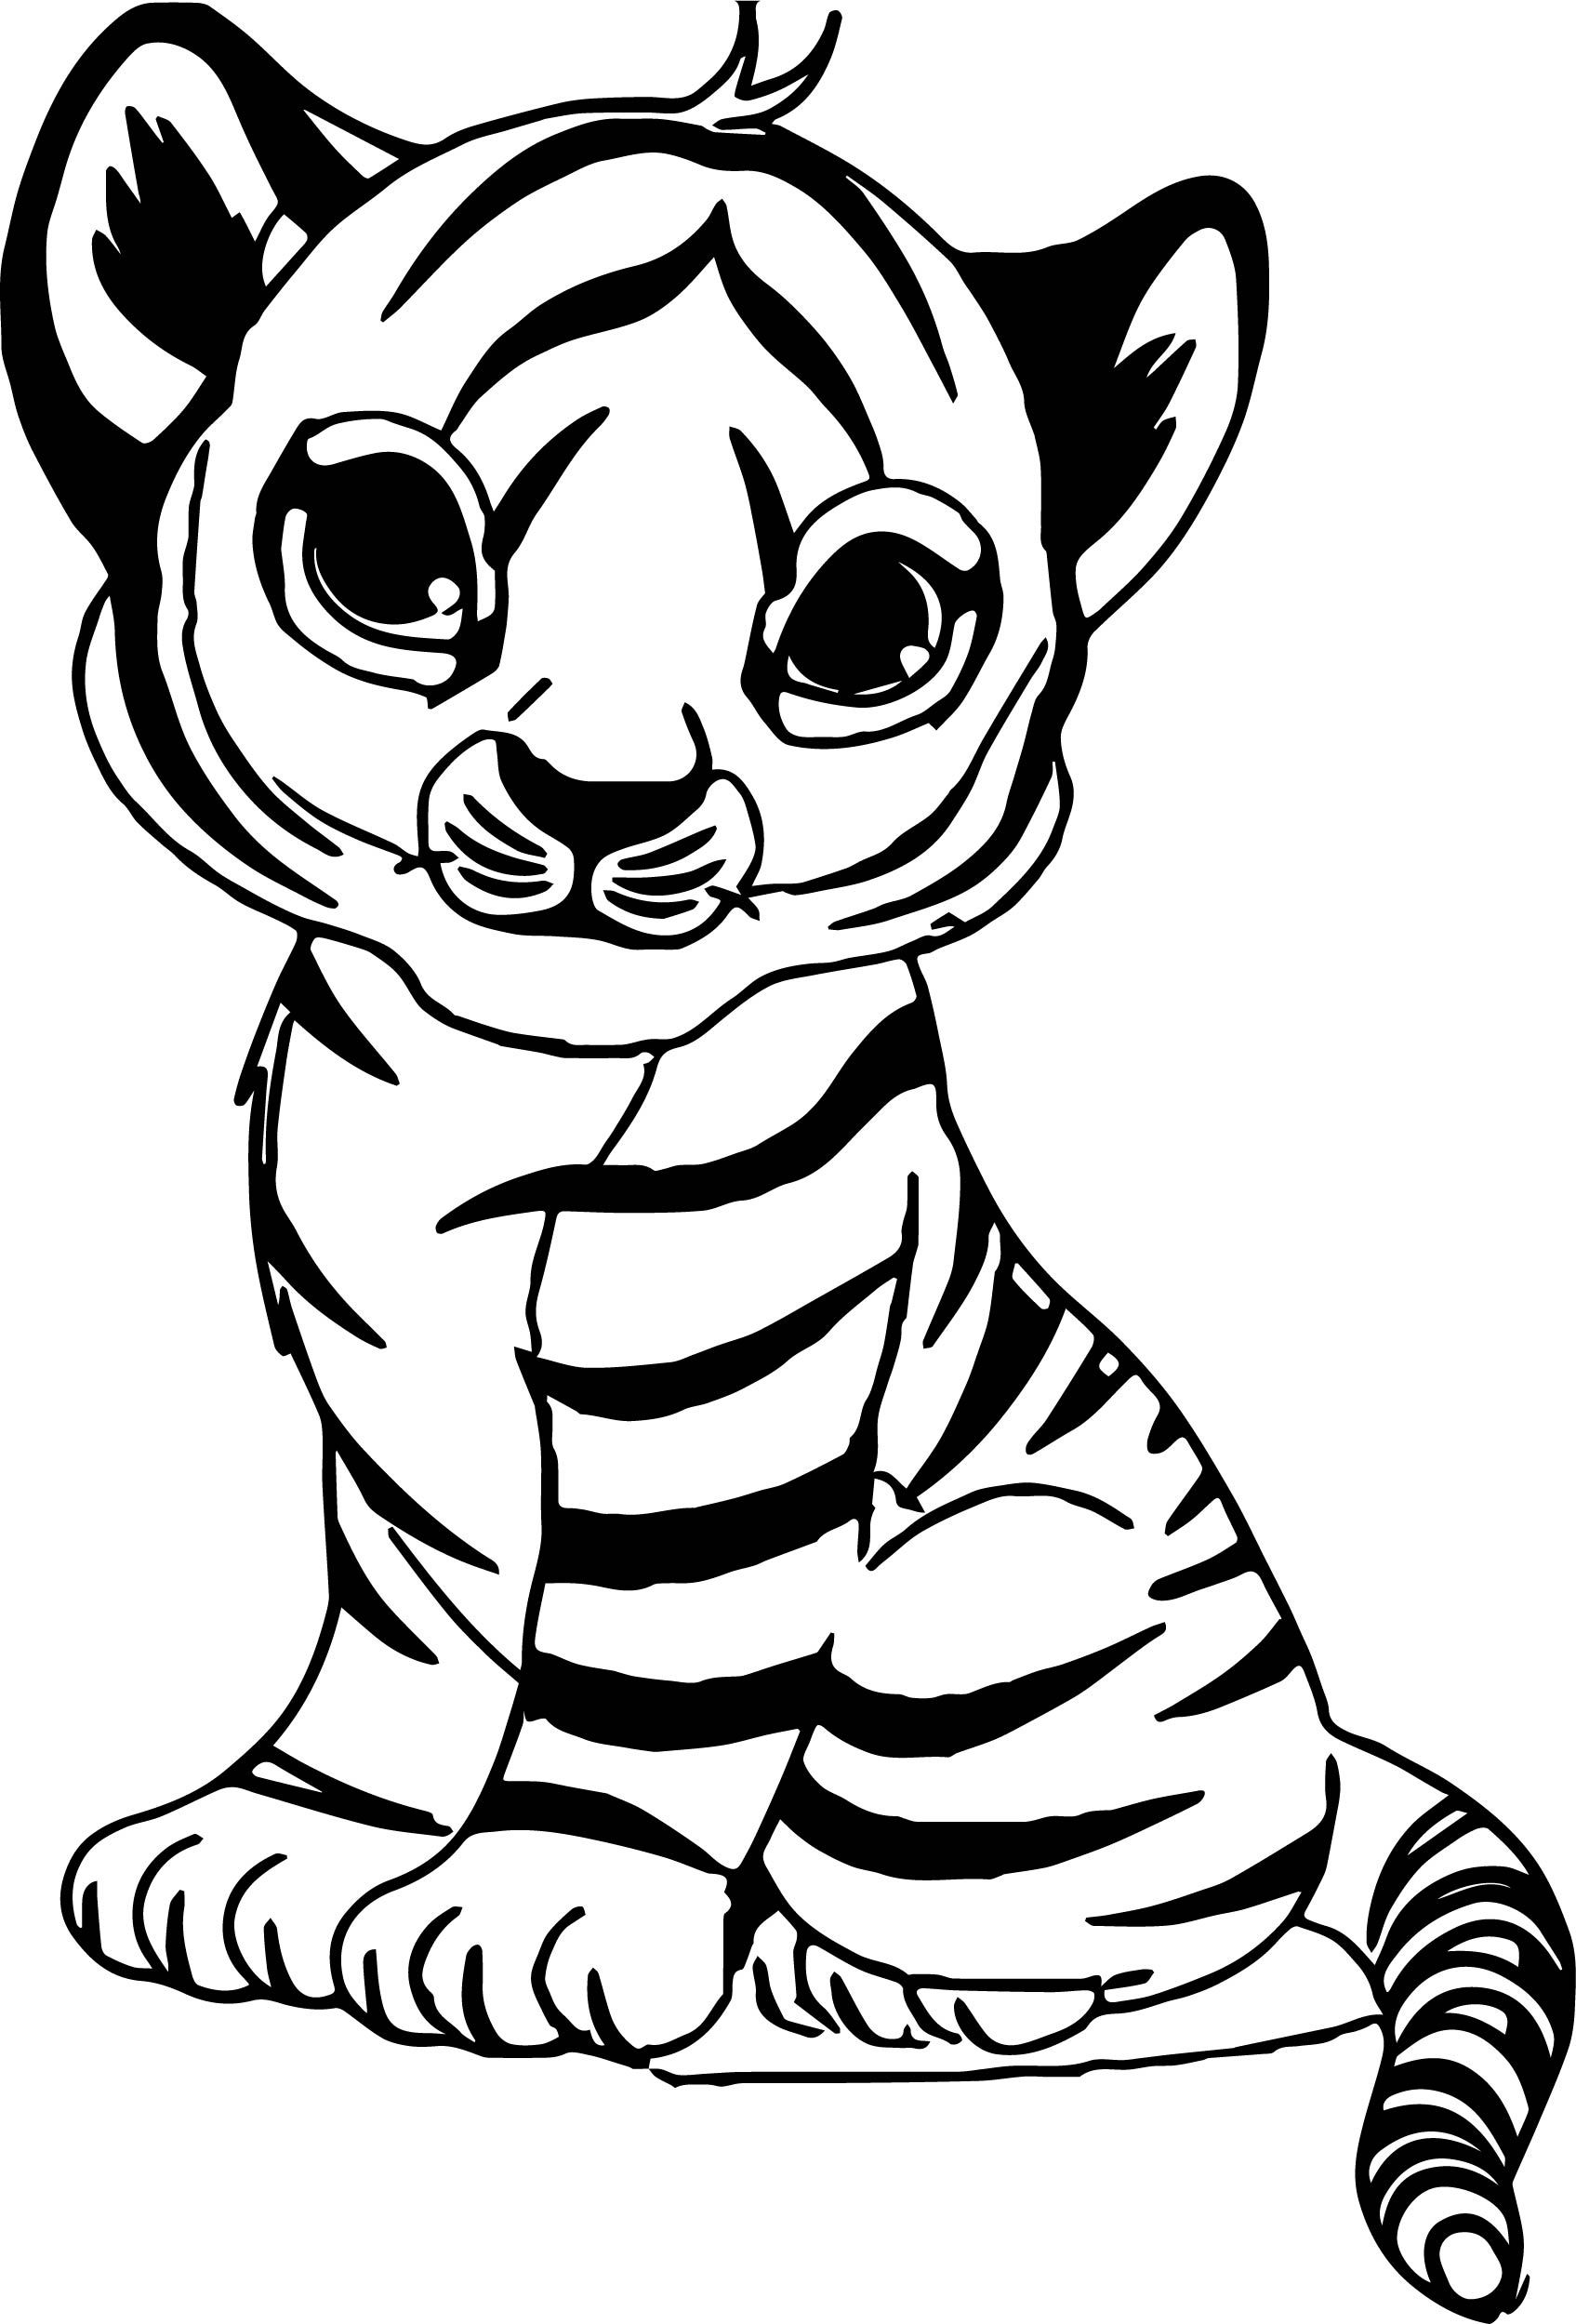 baby tiger coloring pages Pin by Christopher Soran on Printable pictures for the girls  baby tiger coloring pages